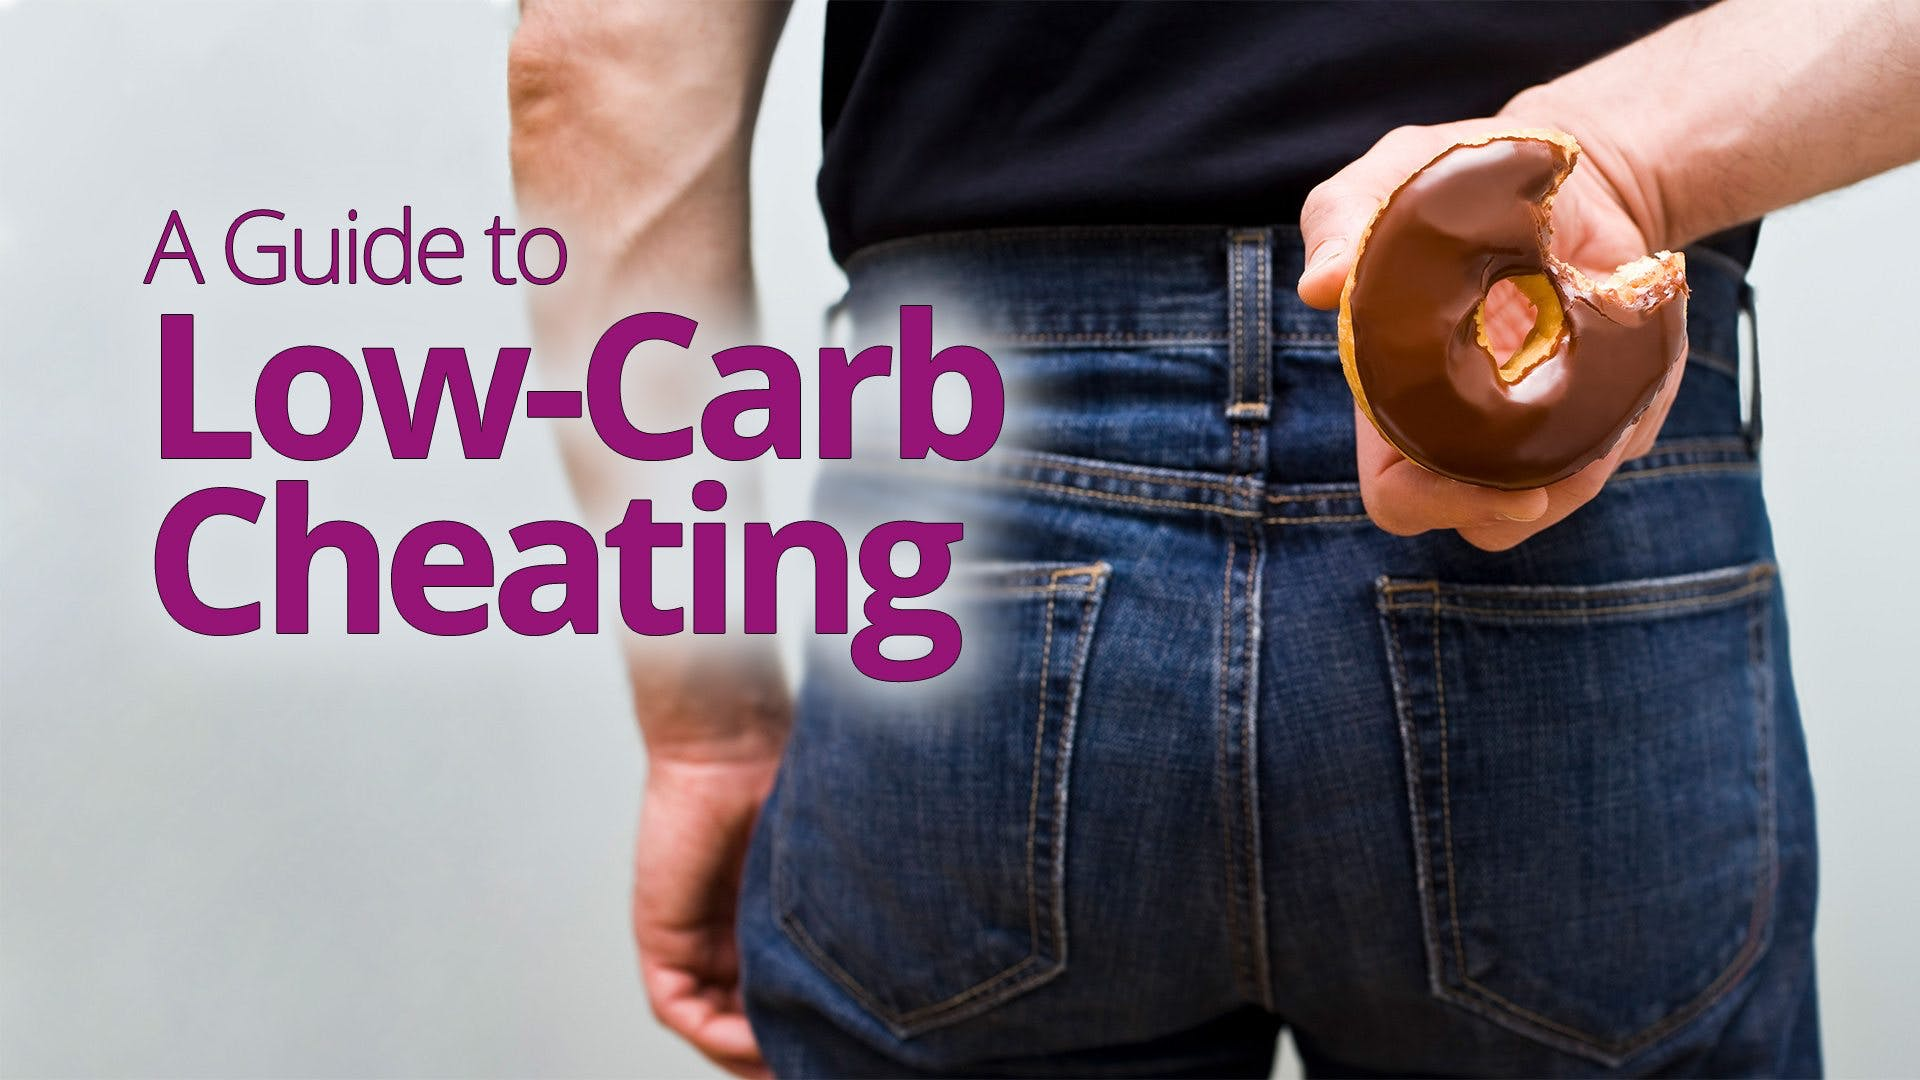 A Guide to Low-Carb Cheating